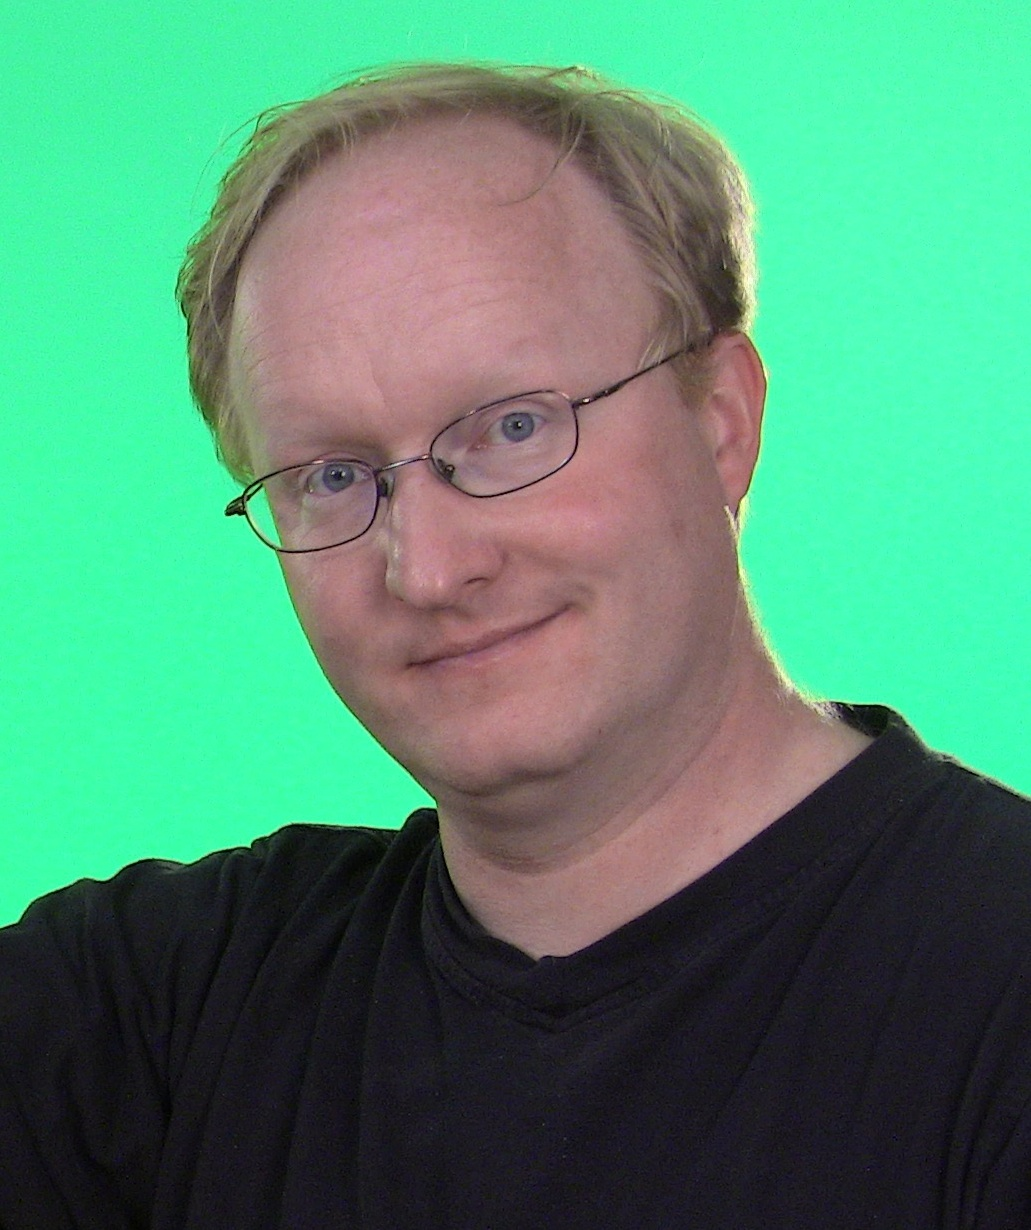 A chat with Ben Heck